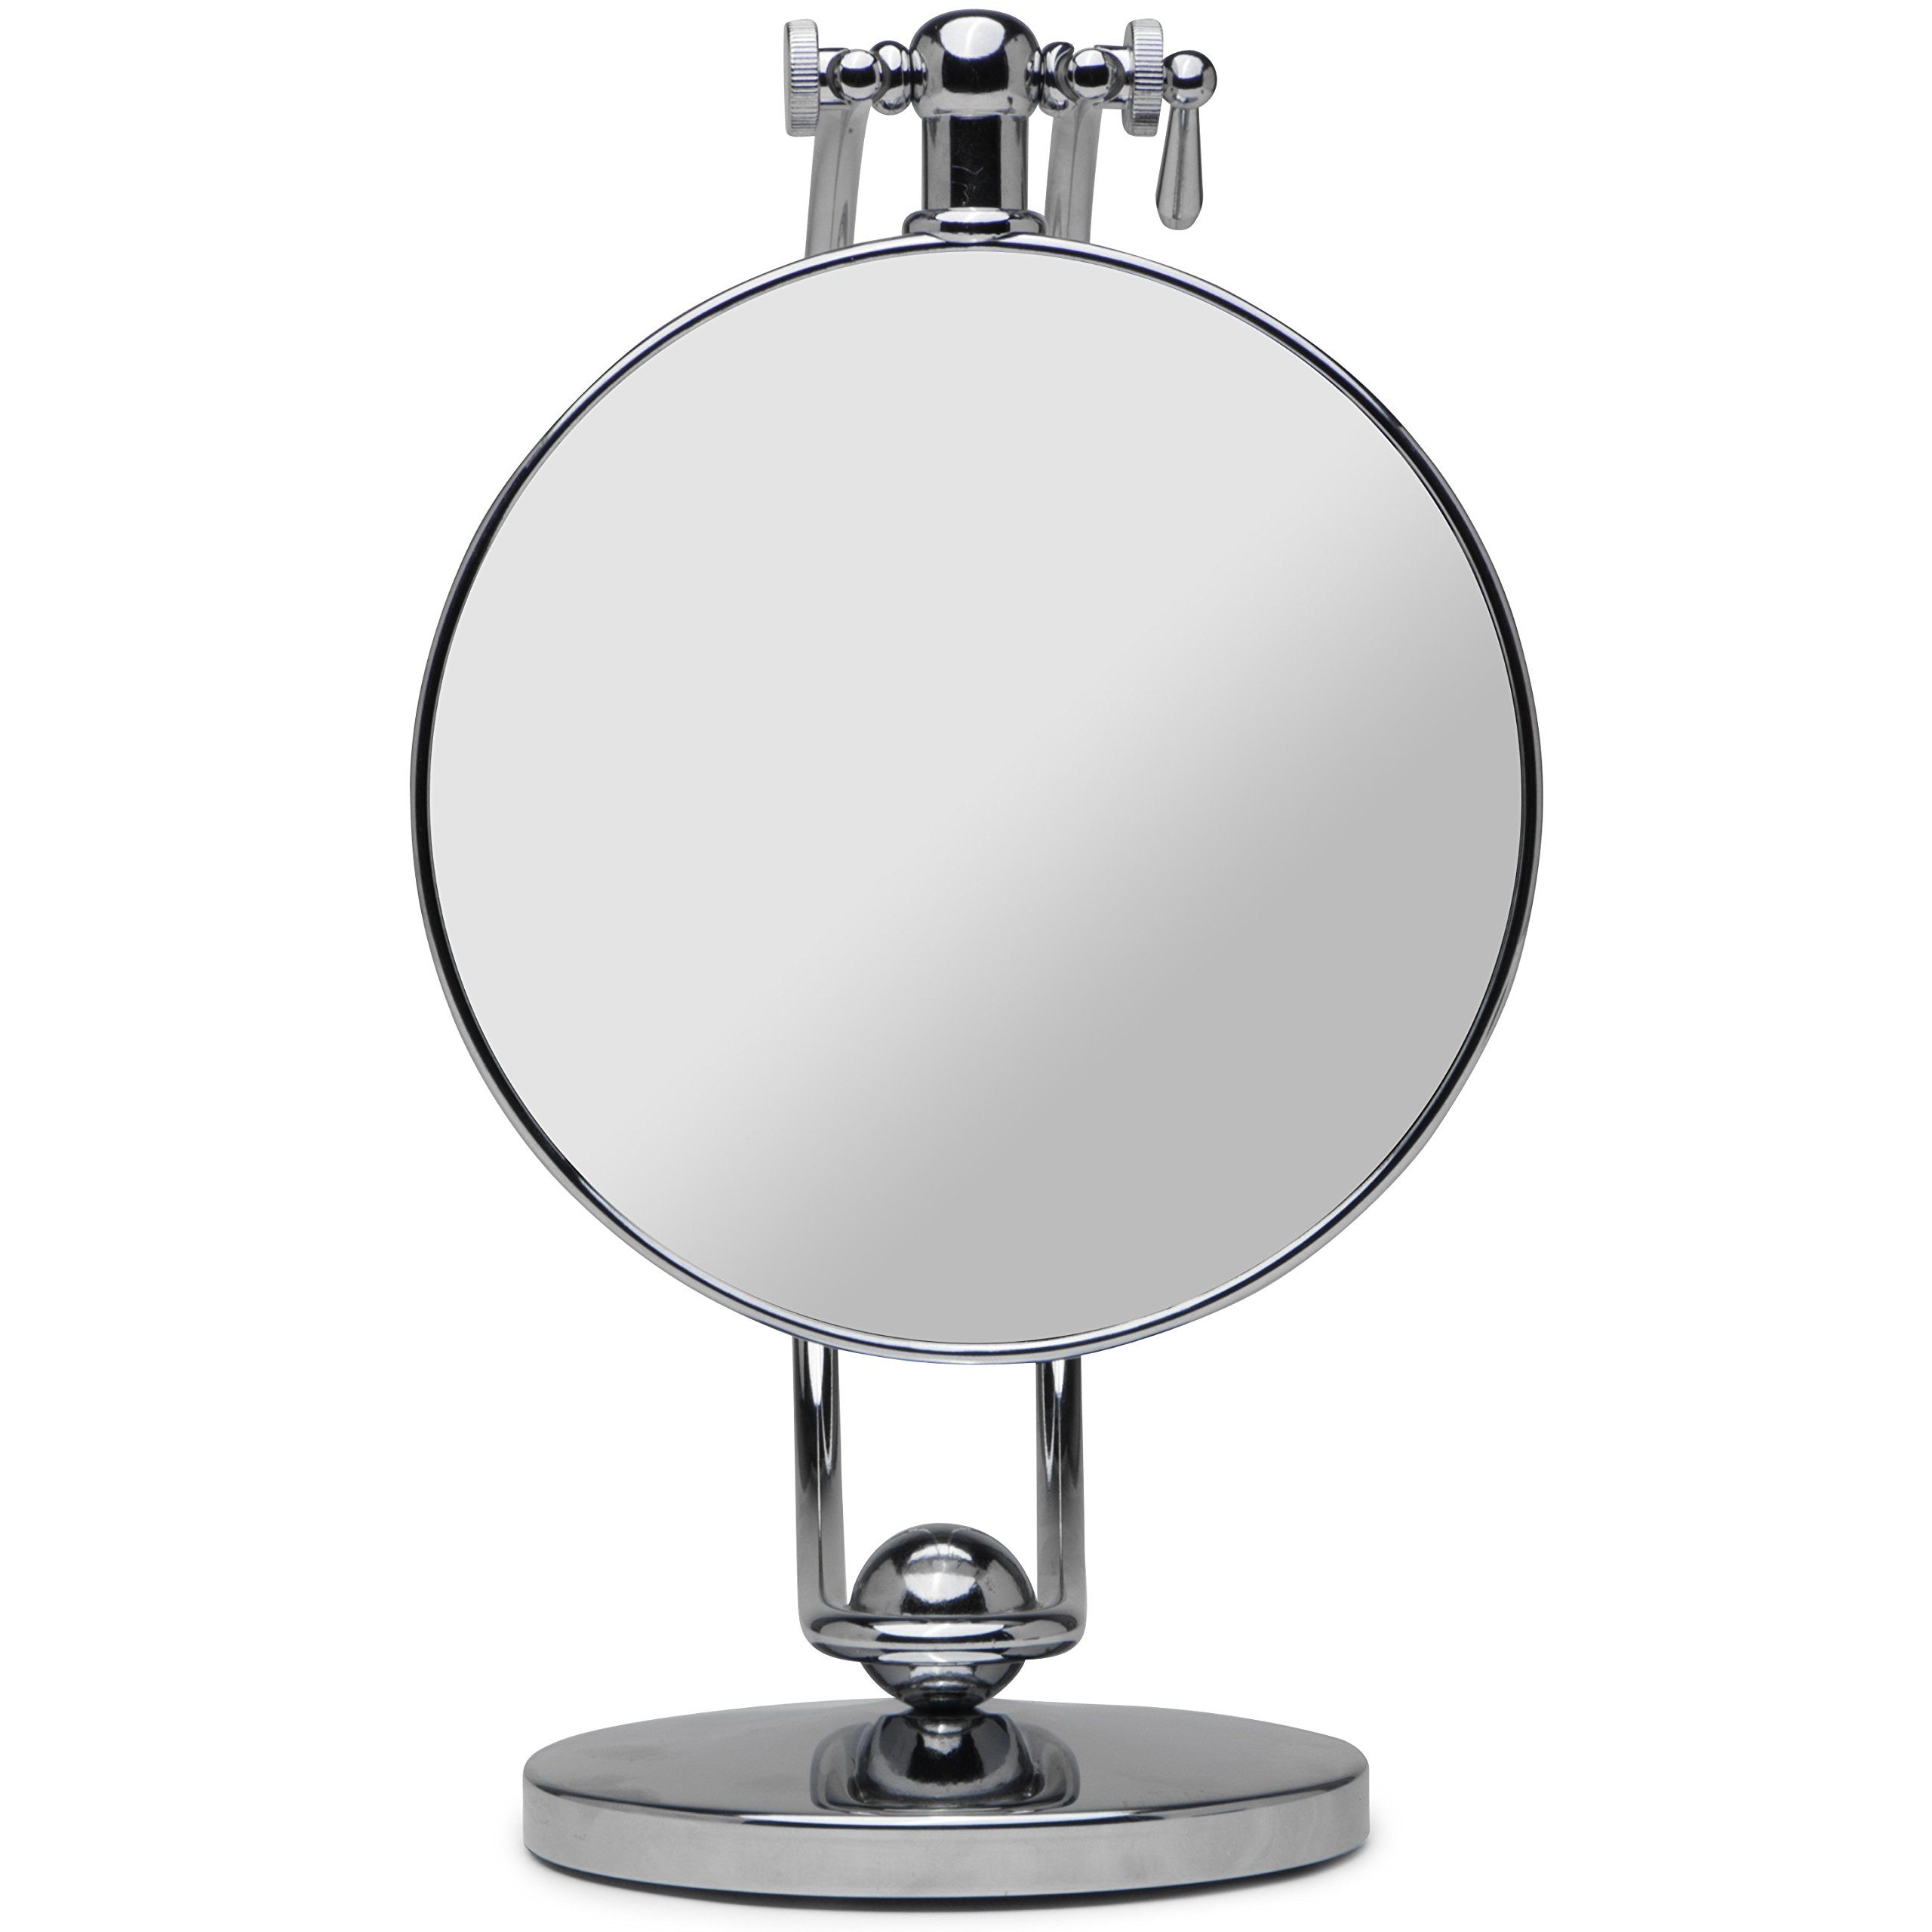 Mirrorvana VISION-360 Swivel Vanity Makeup Mirror with 1x & 7x Magnification | 360° Rotating Angle and Height Adjustable Cosmetic Mirror, 7-Inch